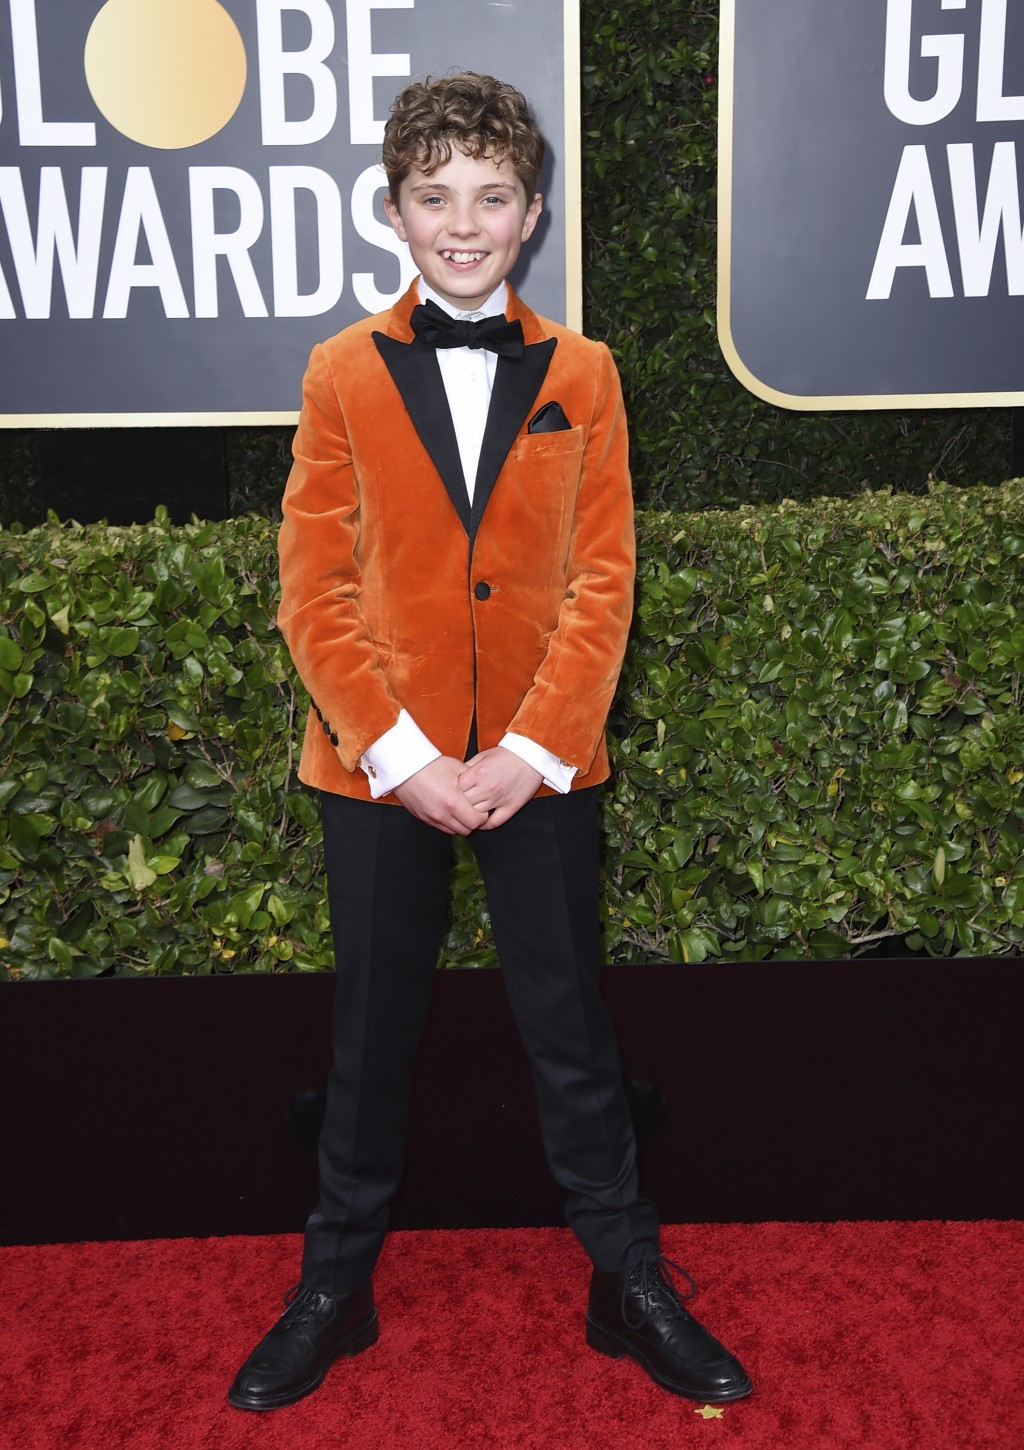 Roman Griffin Davis arrives at the 77th annual Golden Globe Awards at the Beverly Hilton Hotel on Sunday, Jan. 5, 2020, in Beverly Hills, Calif. (Phot...